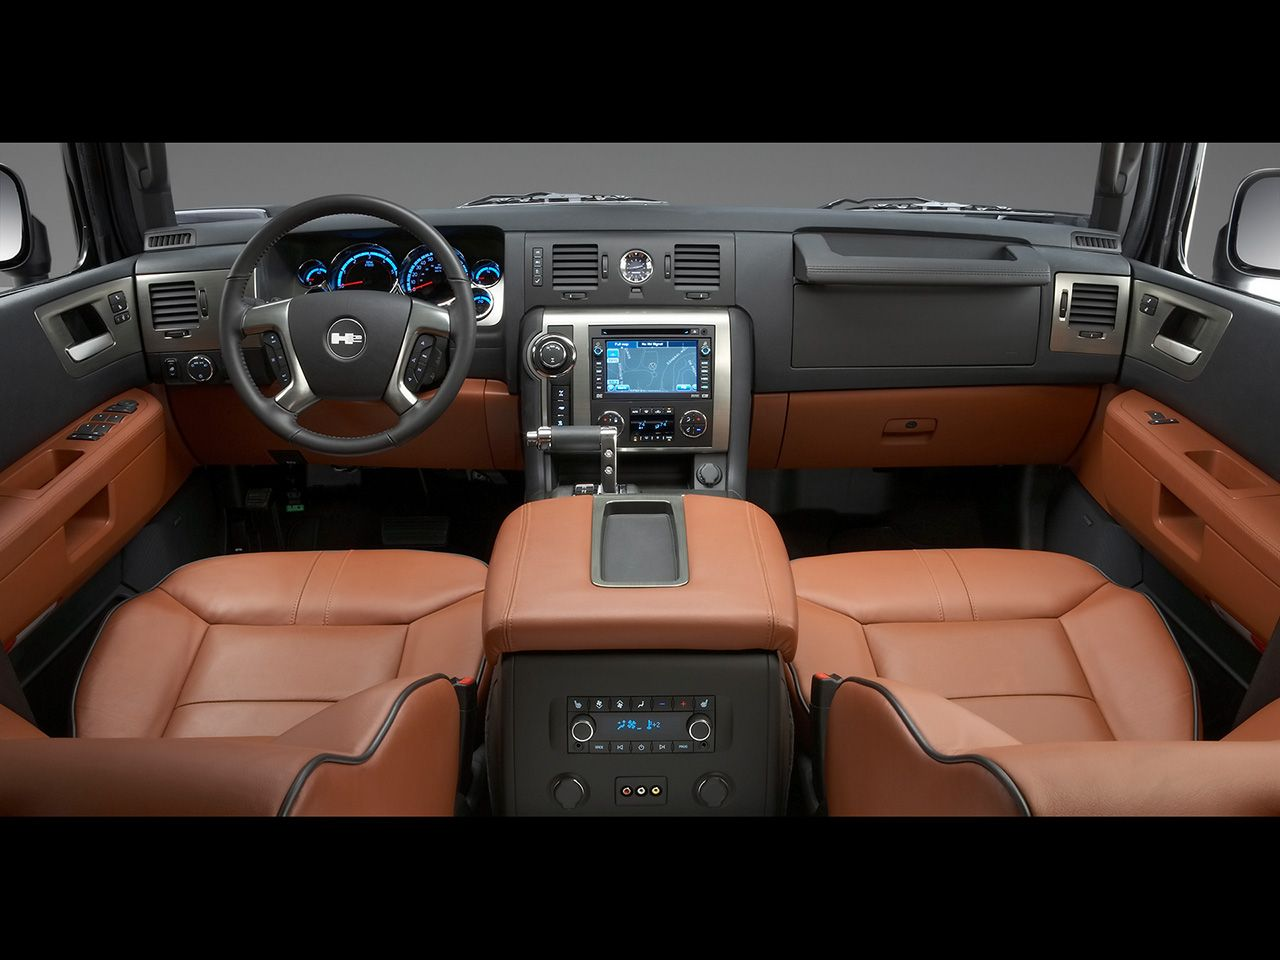 Hummer Interiors 2008 Hummer H2 Interior Rear Seating View 1280x960 Wallpaper Hummer